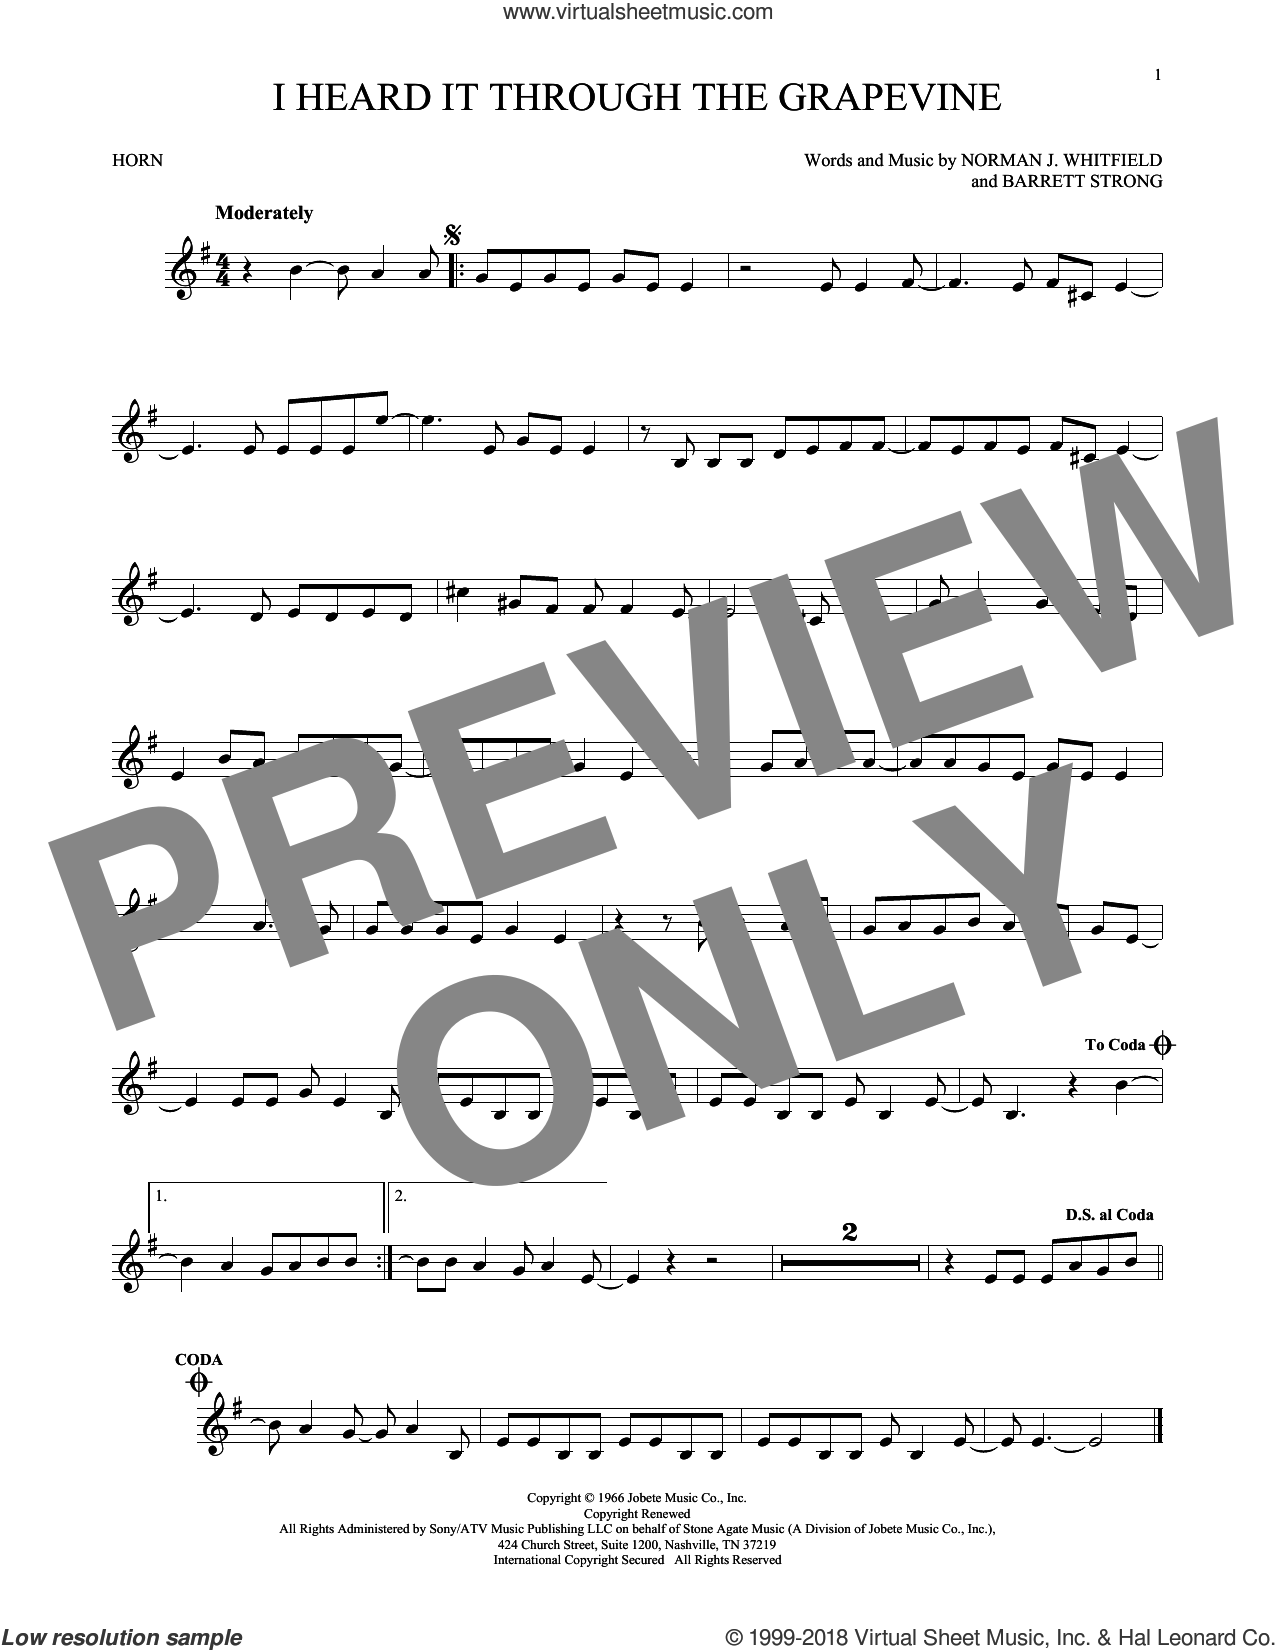 I Heard It Through The Grapevine sheet music for horn solo by Barrett Strong. Score Image Preview.